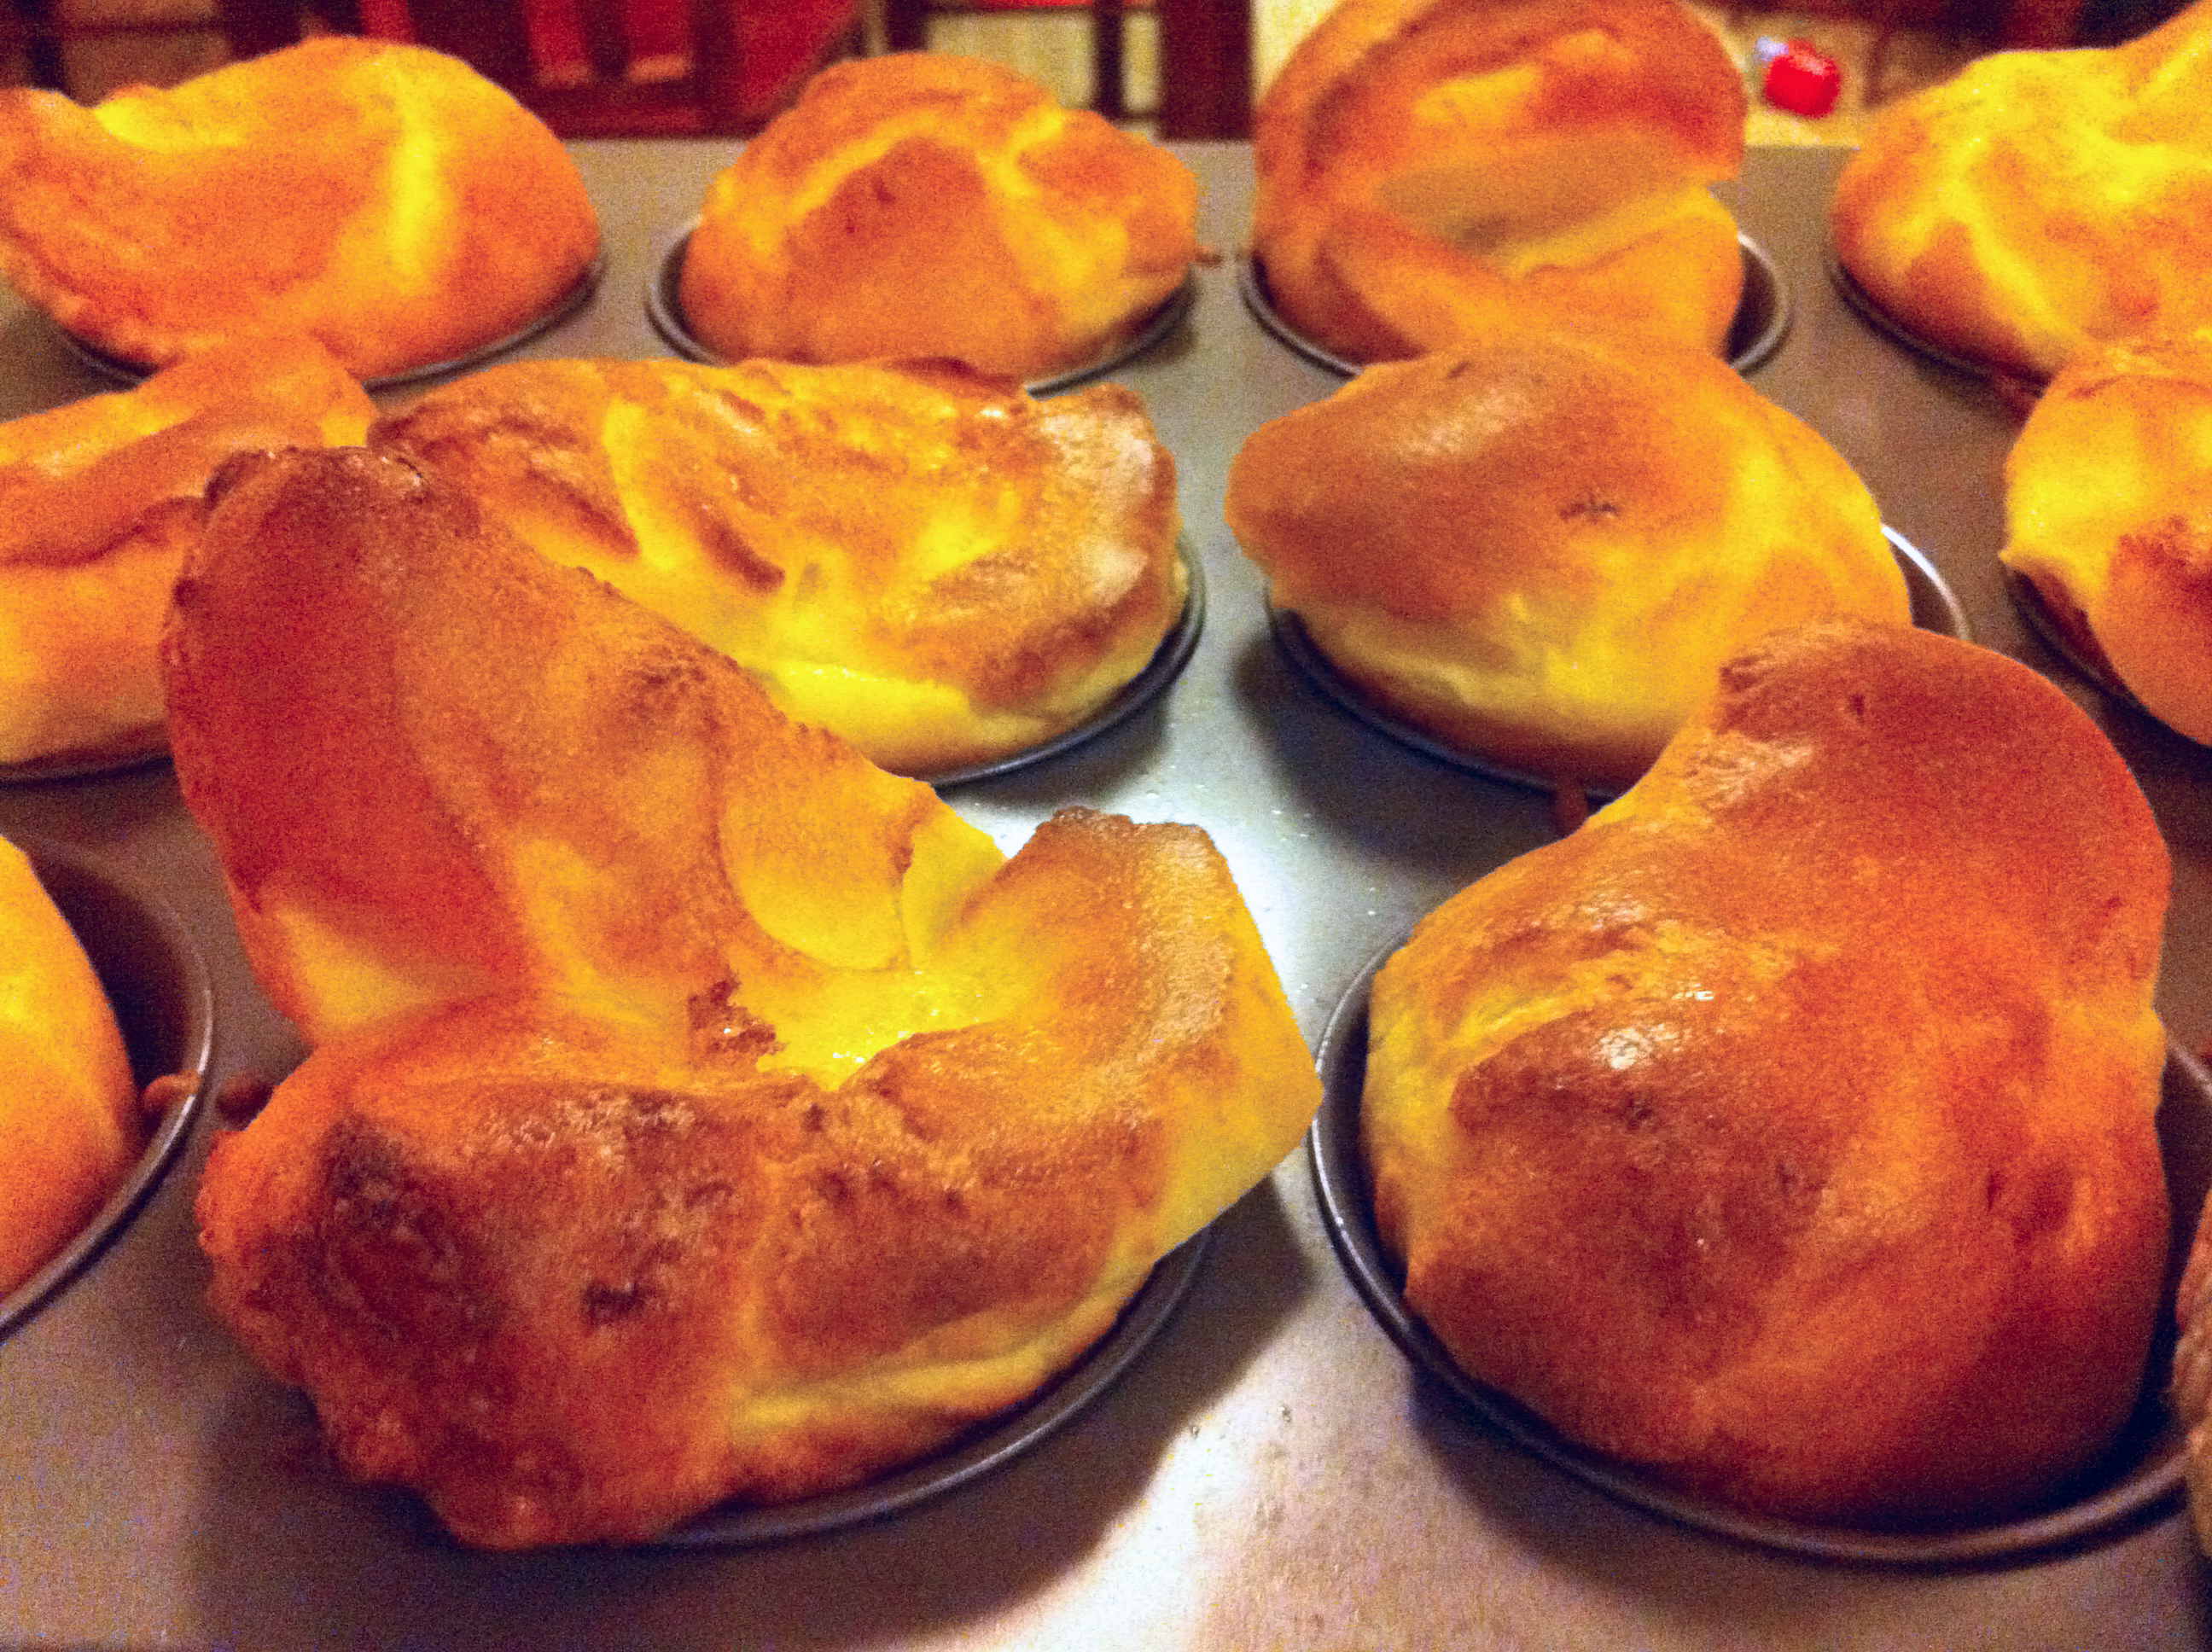 ... yorkshire pudding so I was pleased. They're pretty easy to make if